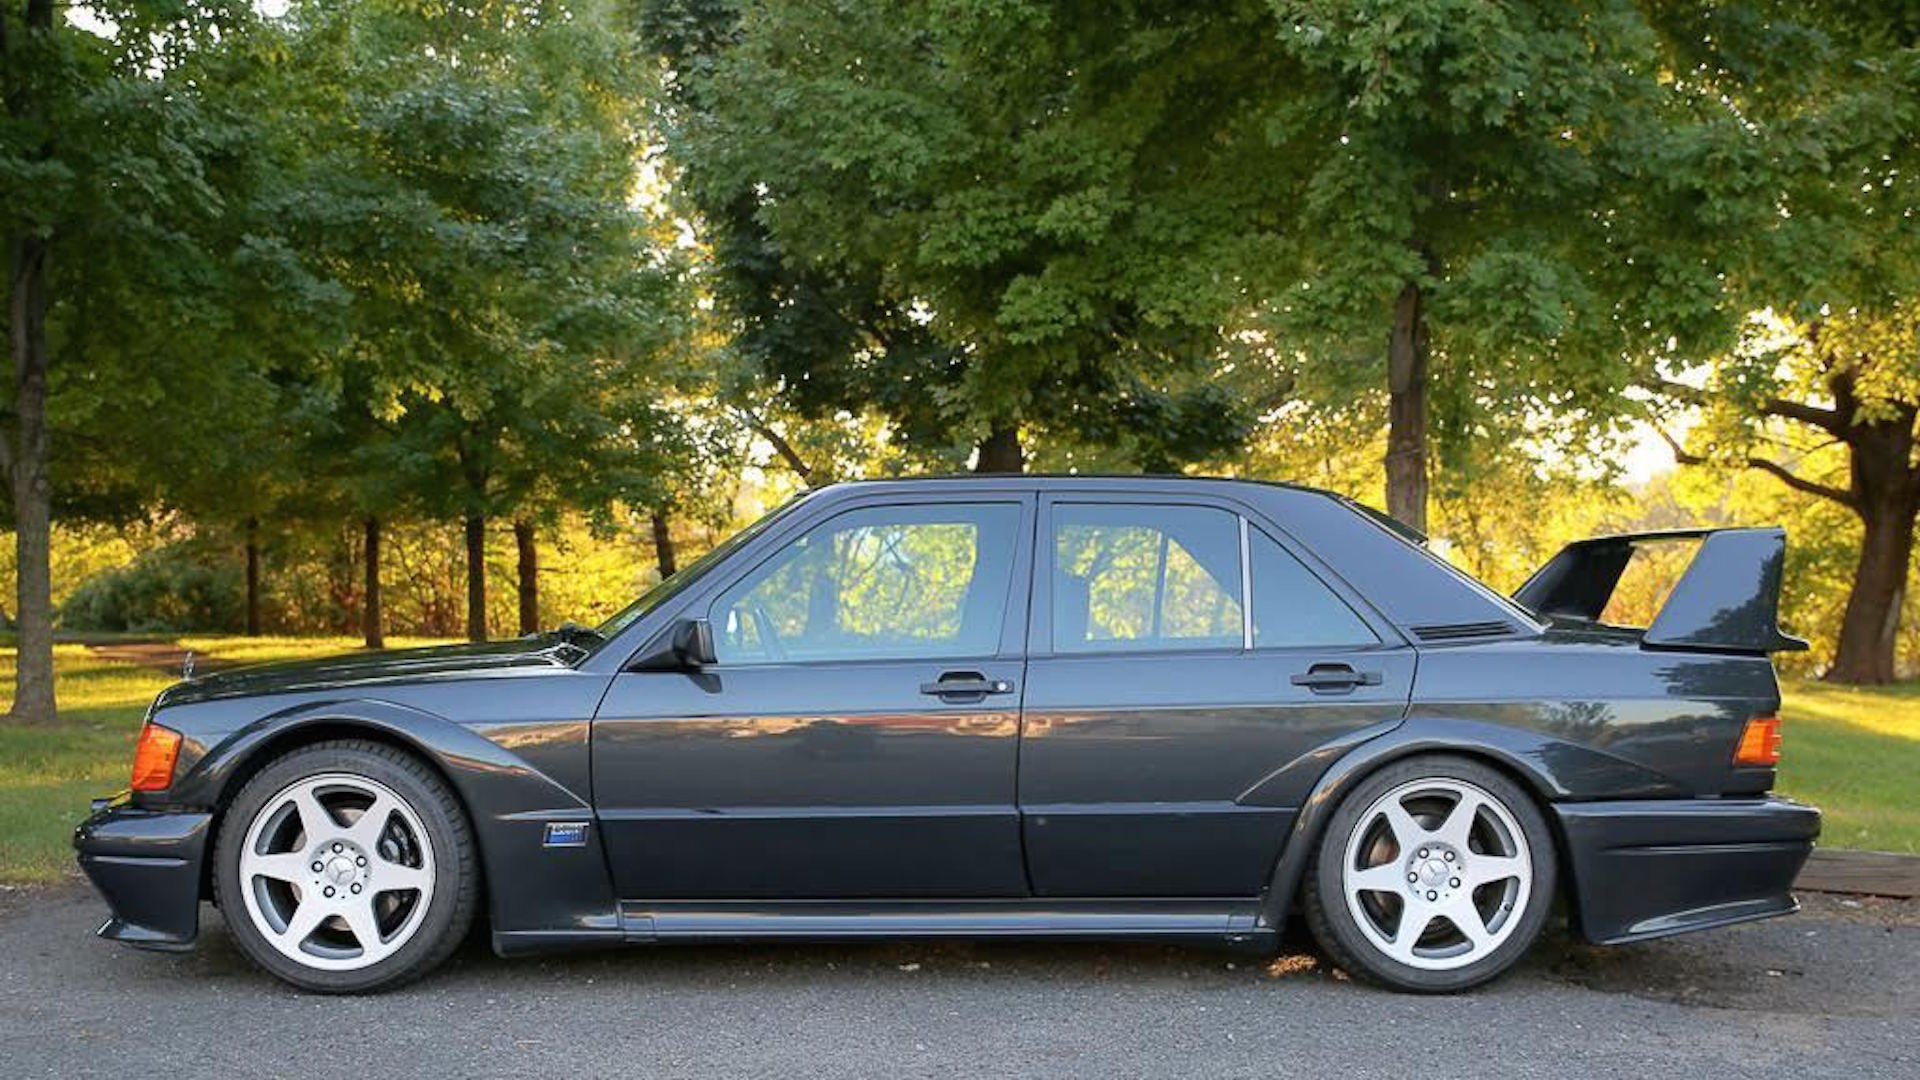 1990 Mercedes Benz 190e Cosworth Evo Ii On Ebay With 29 000 Miles